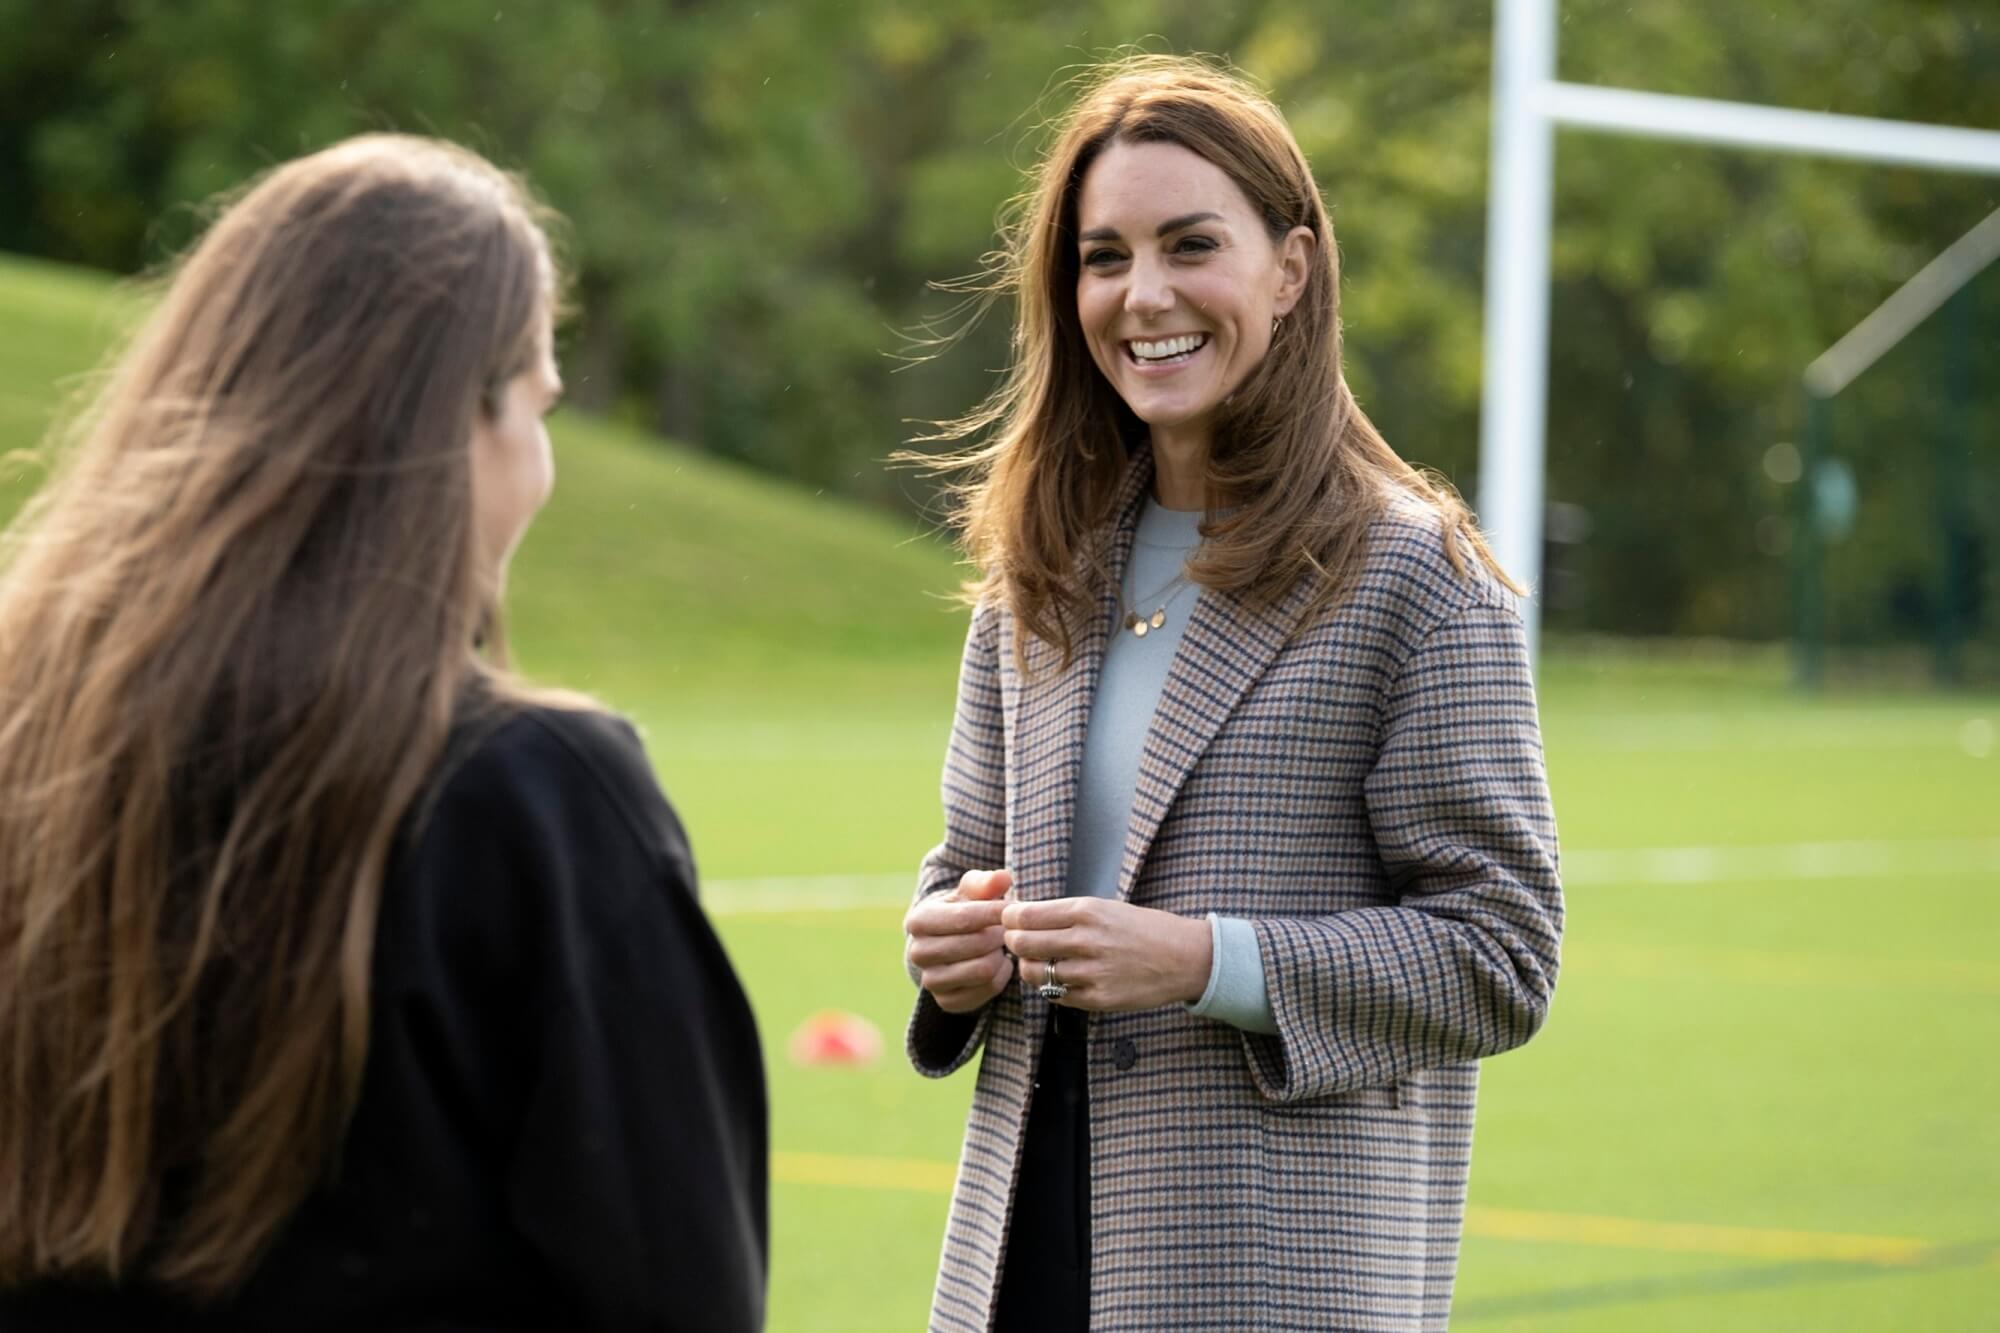 The Duchess of Cambridge talking to a student by the Sports Centre